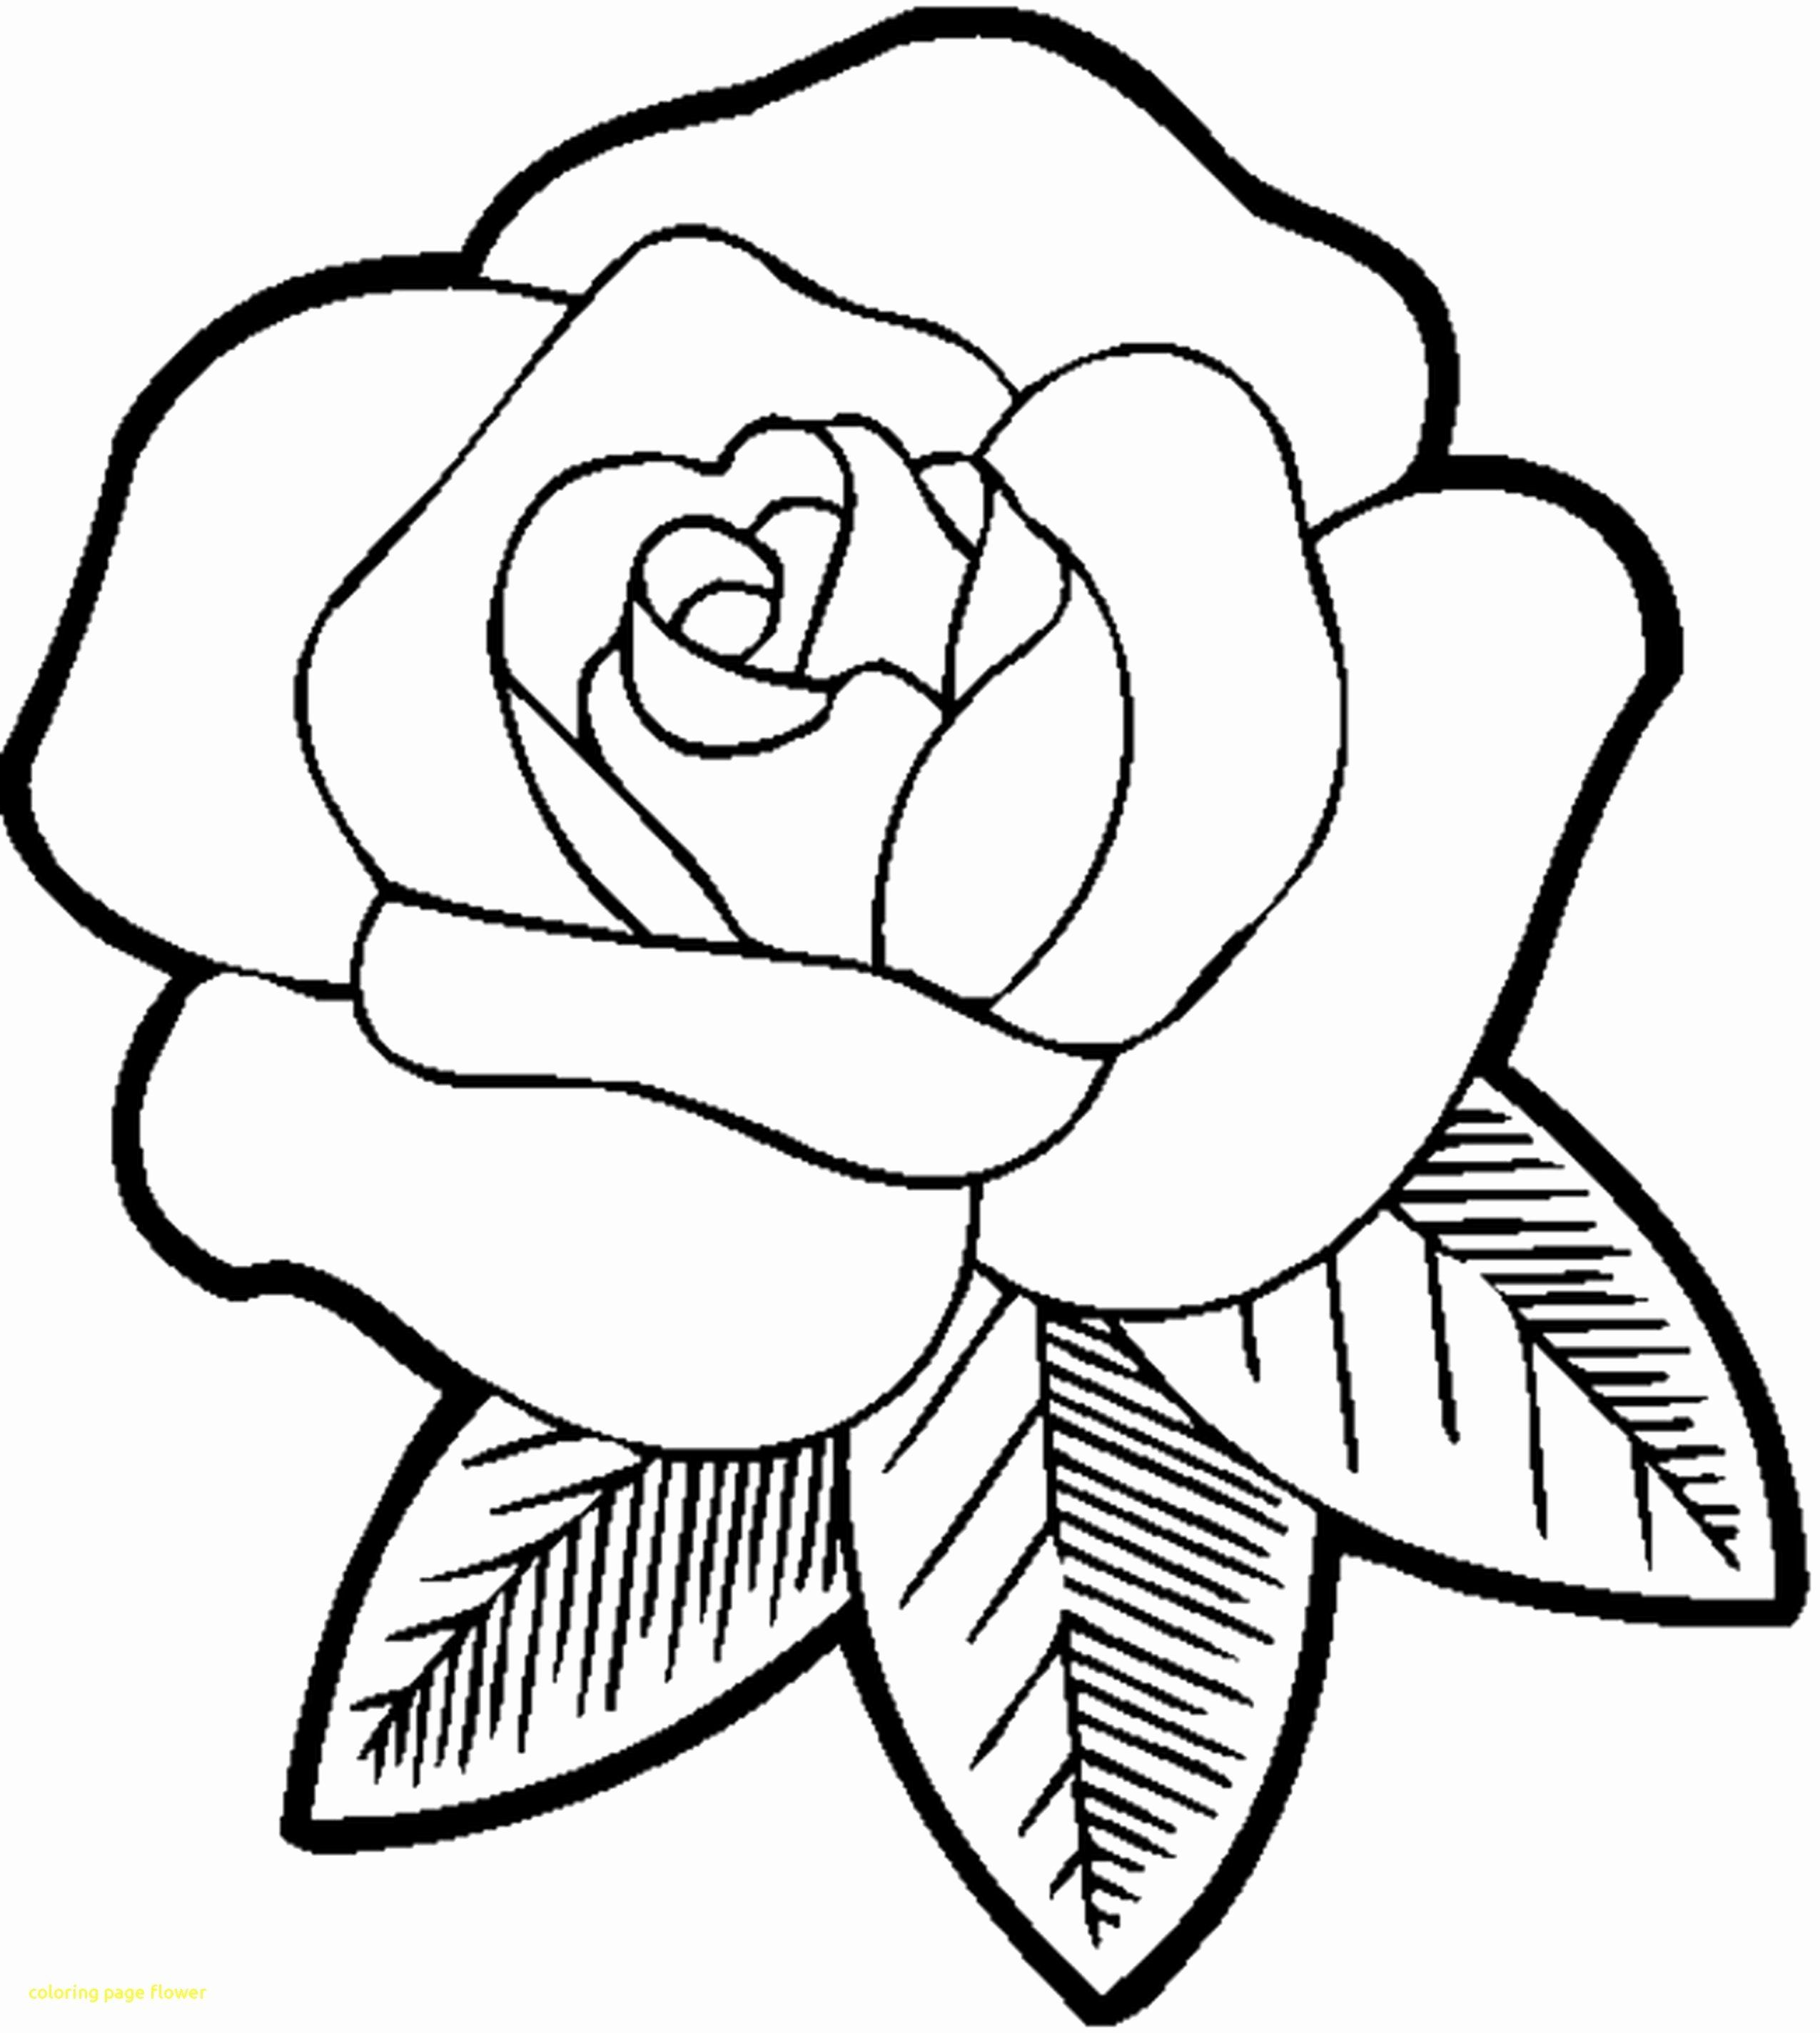 Colouring Roses Flowers New Coloring Pages 54 Outstanding Coloring Pages Crosses In 2020 Heart Coloring Pages Rose Coloring Pages Flower Coloring Pages